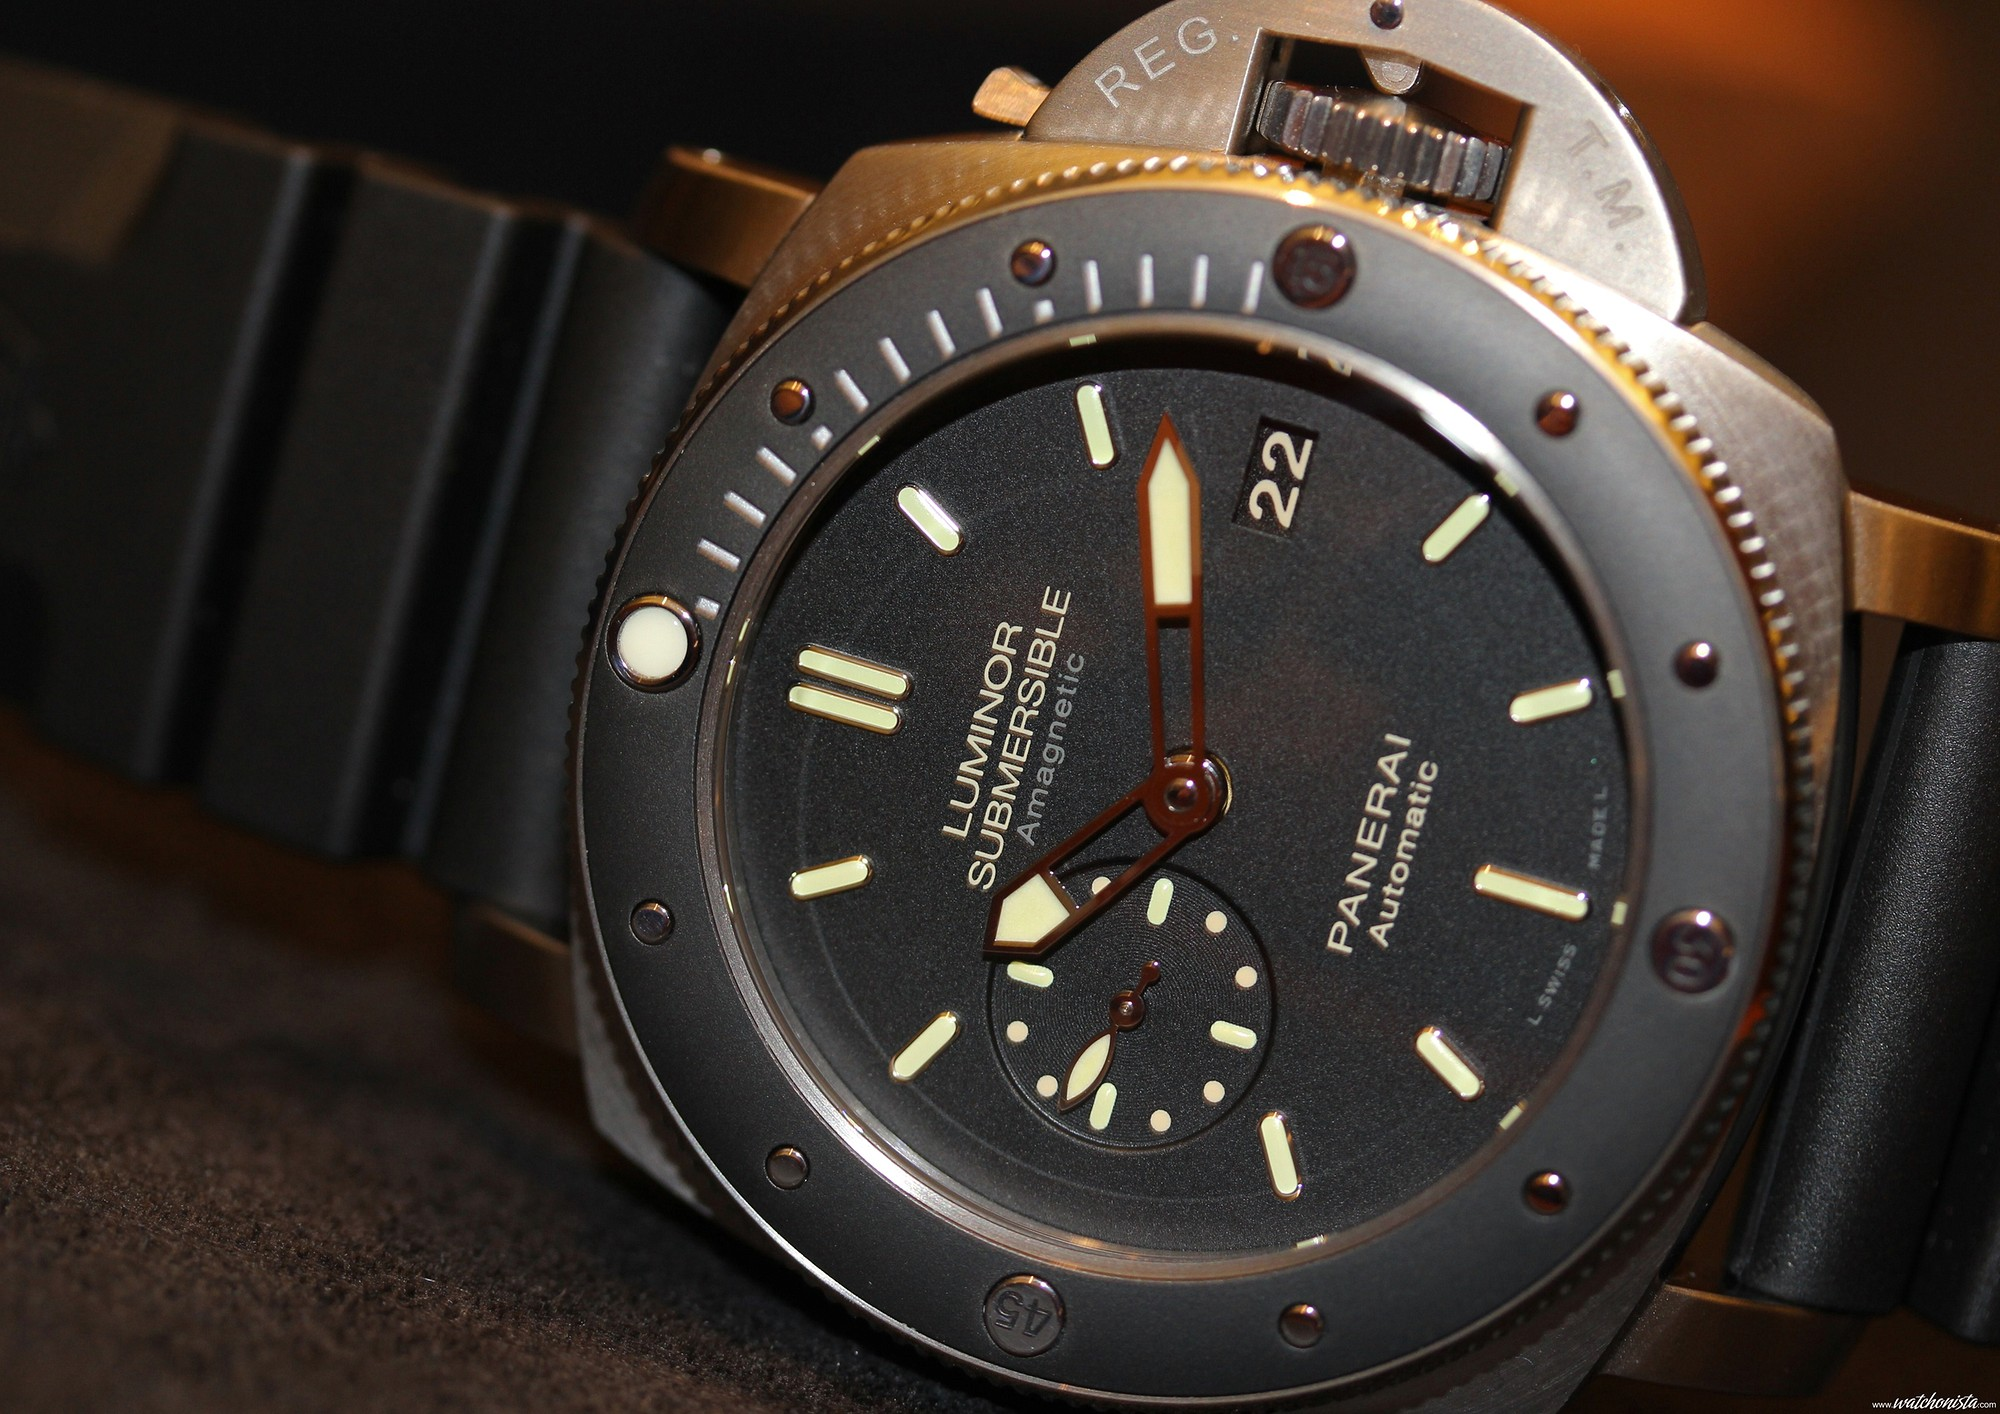 df73d3dc109c Fearless-and-Indestructible---Panerai-Luminor-Submersible-1950-. Panerai s  new Luminor Submersible 1950 Amagnetic three days ...